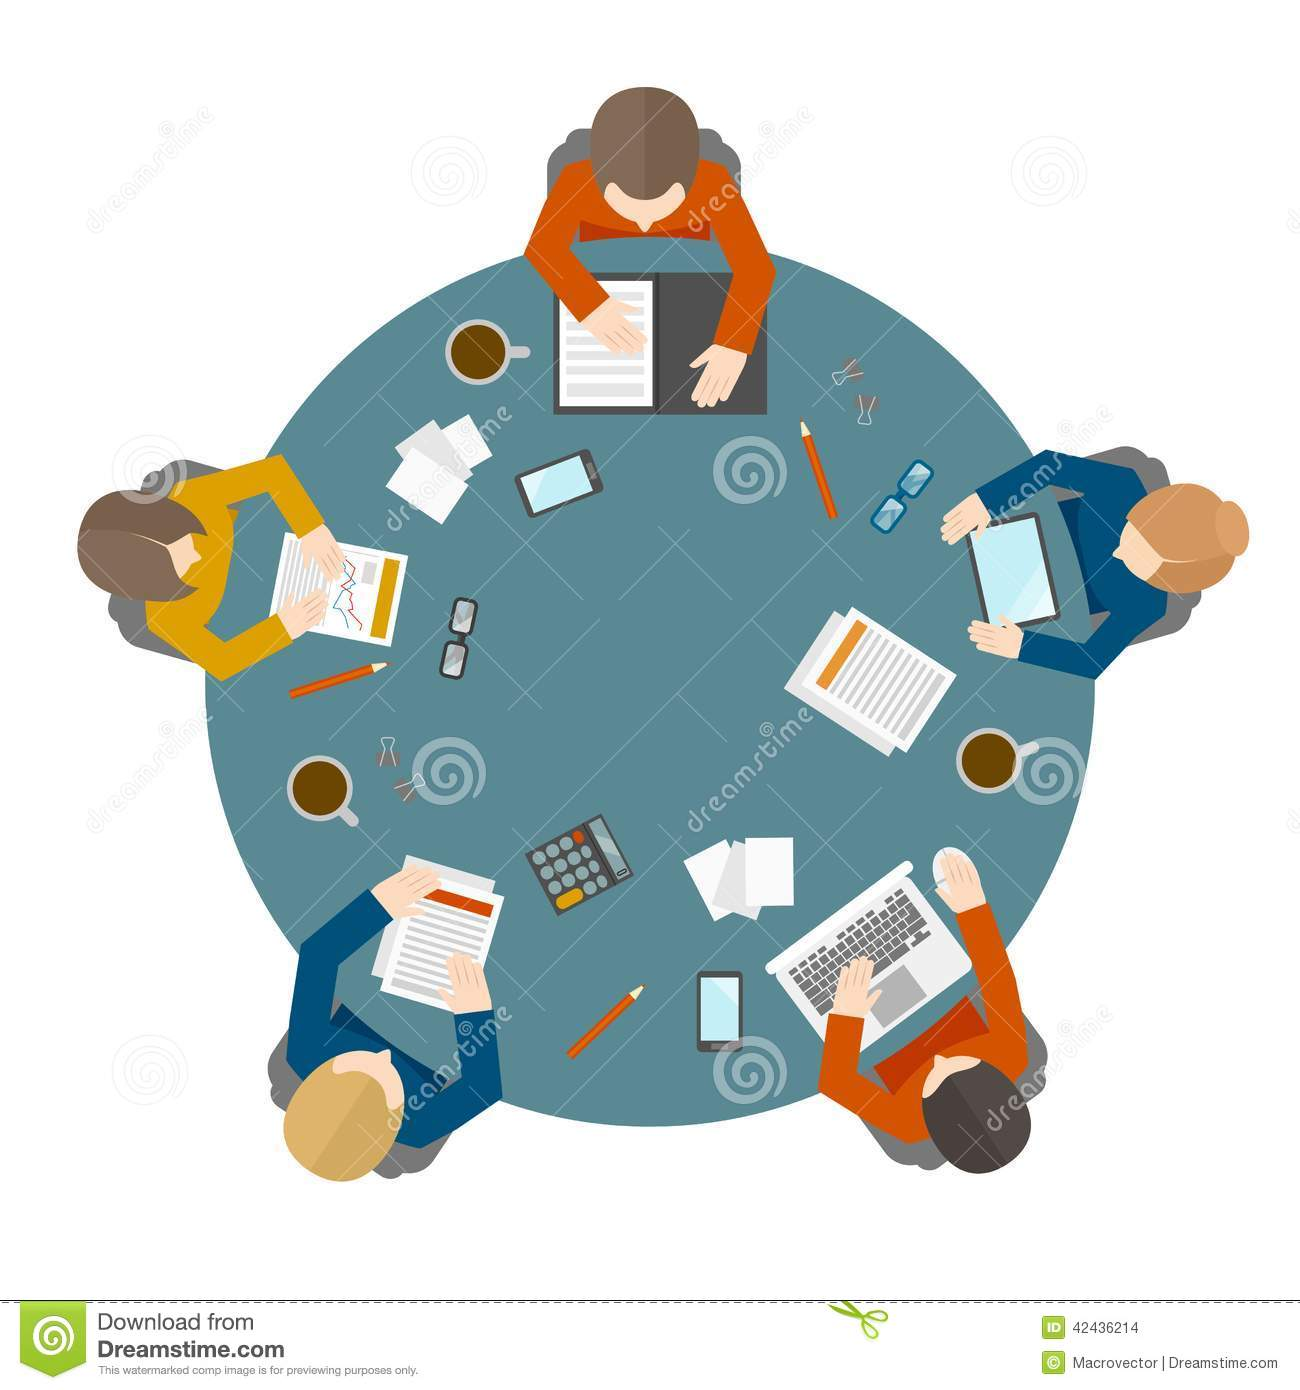 Round table meeting icon - Business Meeting In Top View Stock Vector Image 42436214